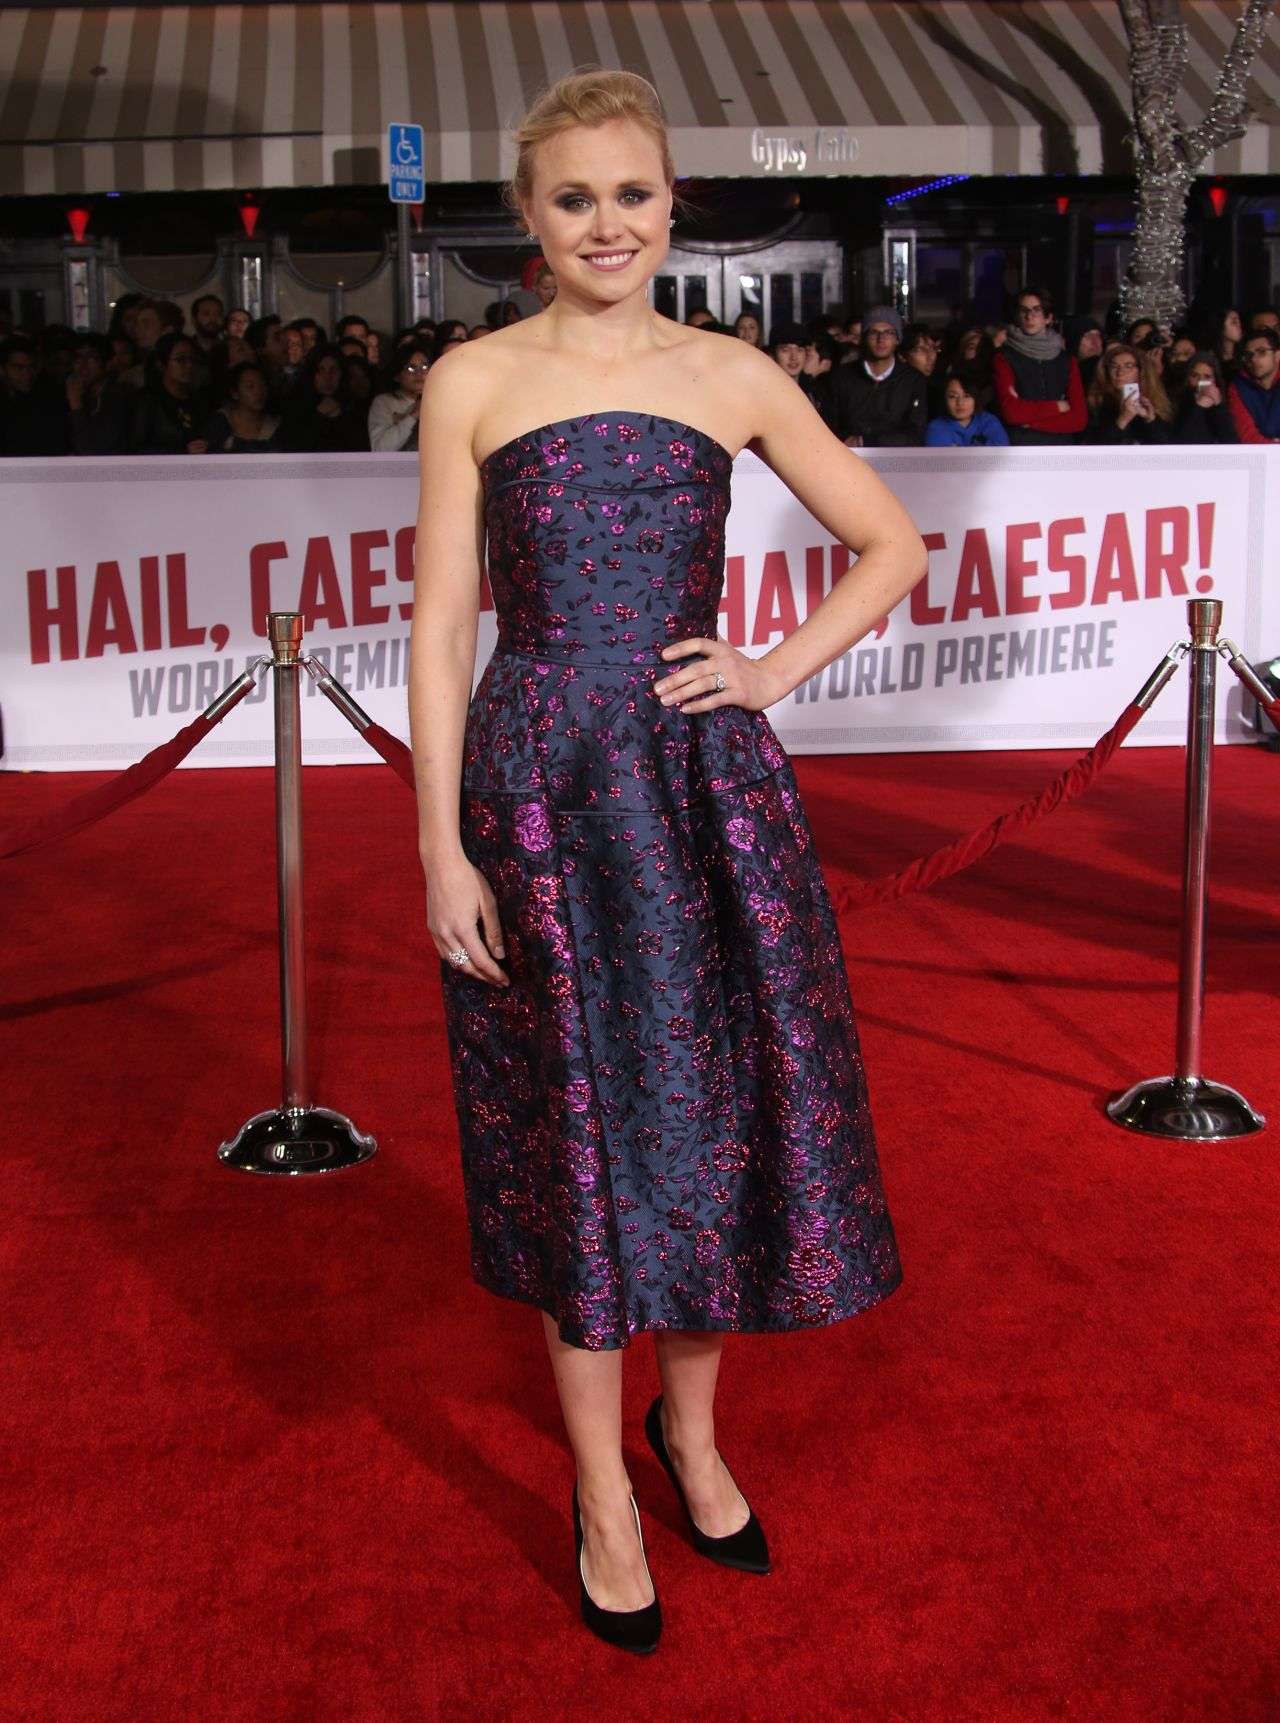 alison-pill-hail-caesar-premiere-in-hollywood-7